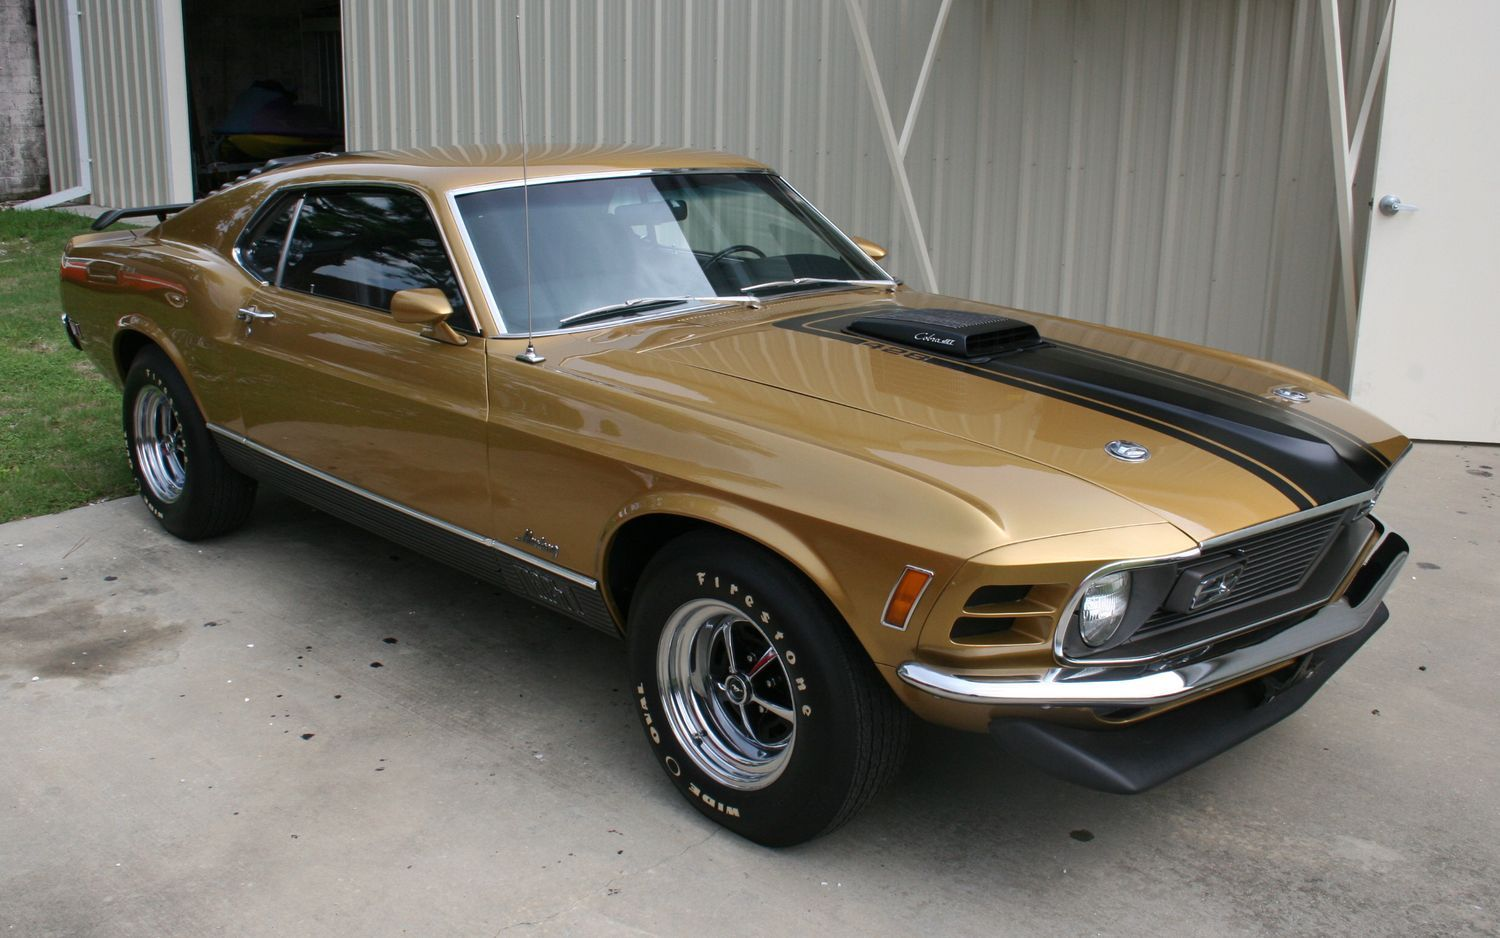 A Rare 1970 Ford Mustang Mach I With A 428 Cubic Inch